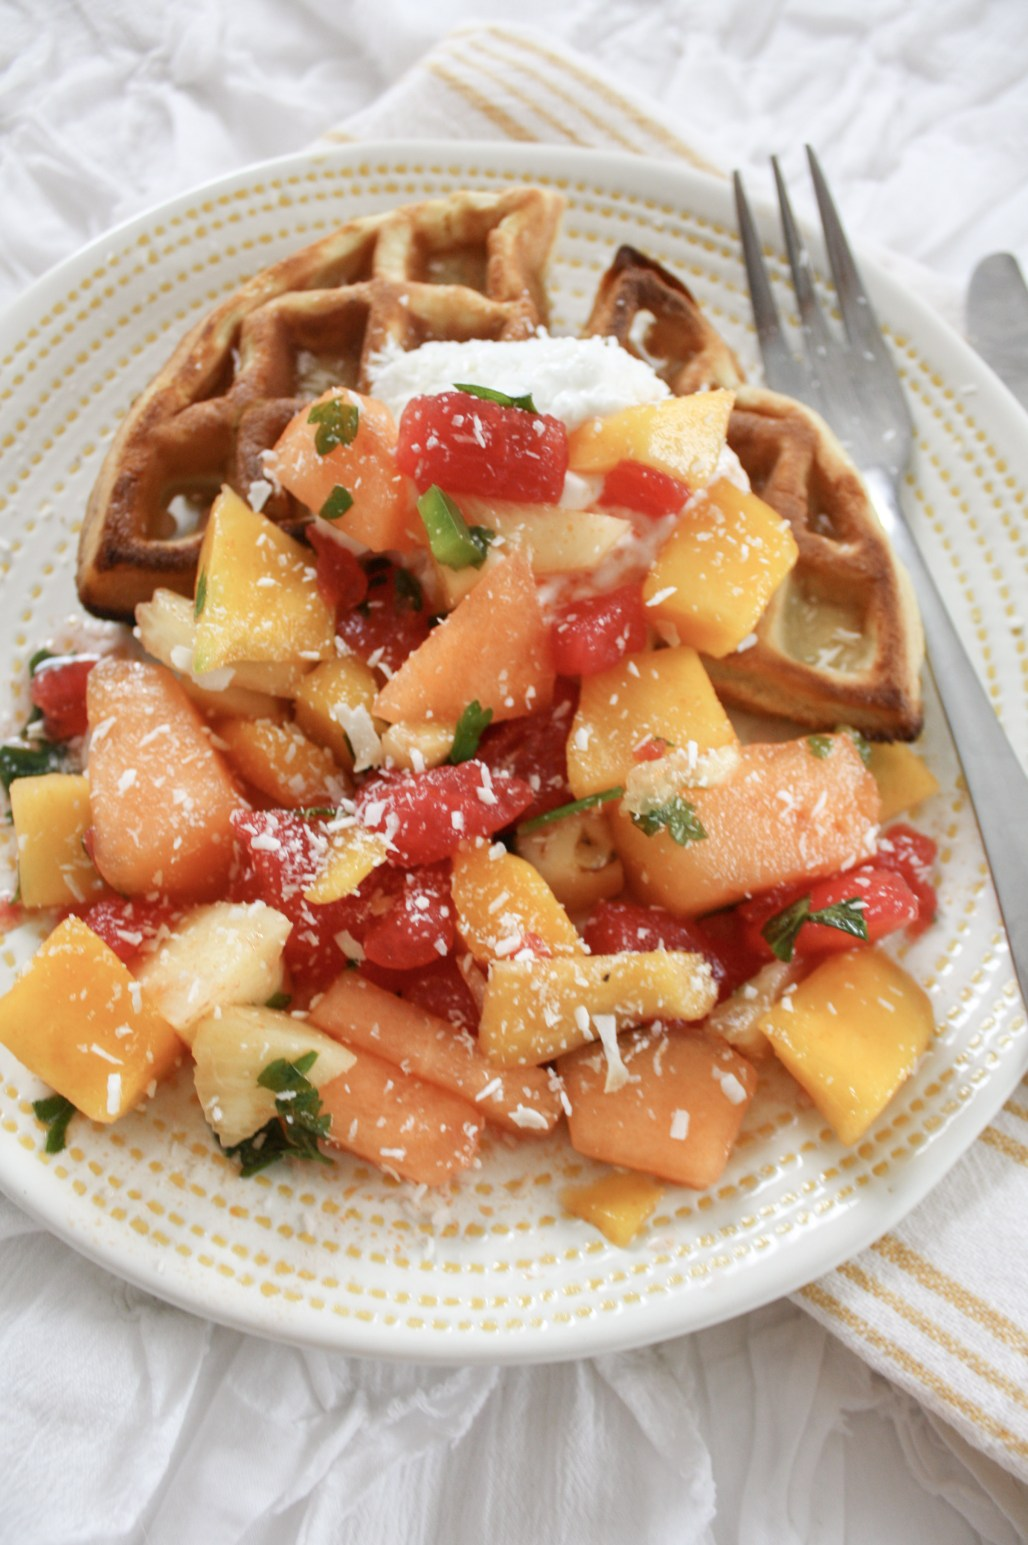 Sweet & Savory Summer Fruit Salad | Dreamery Events